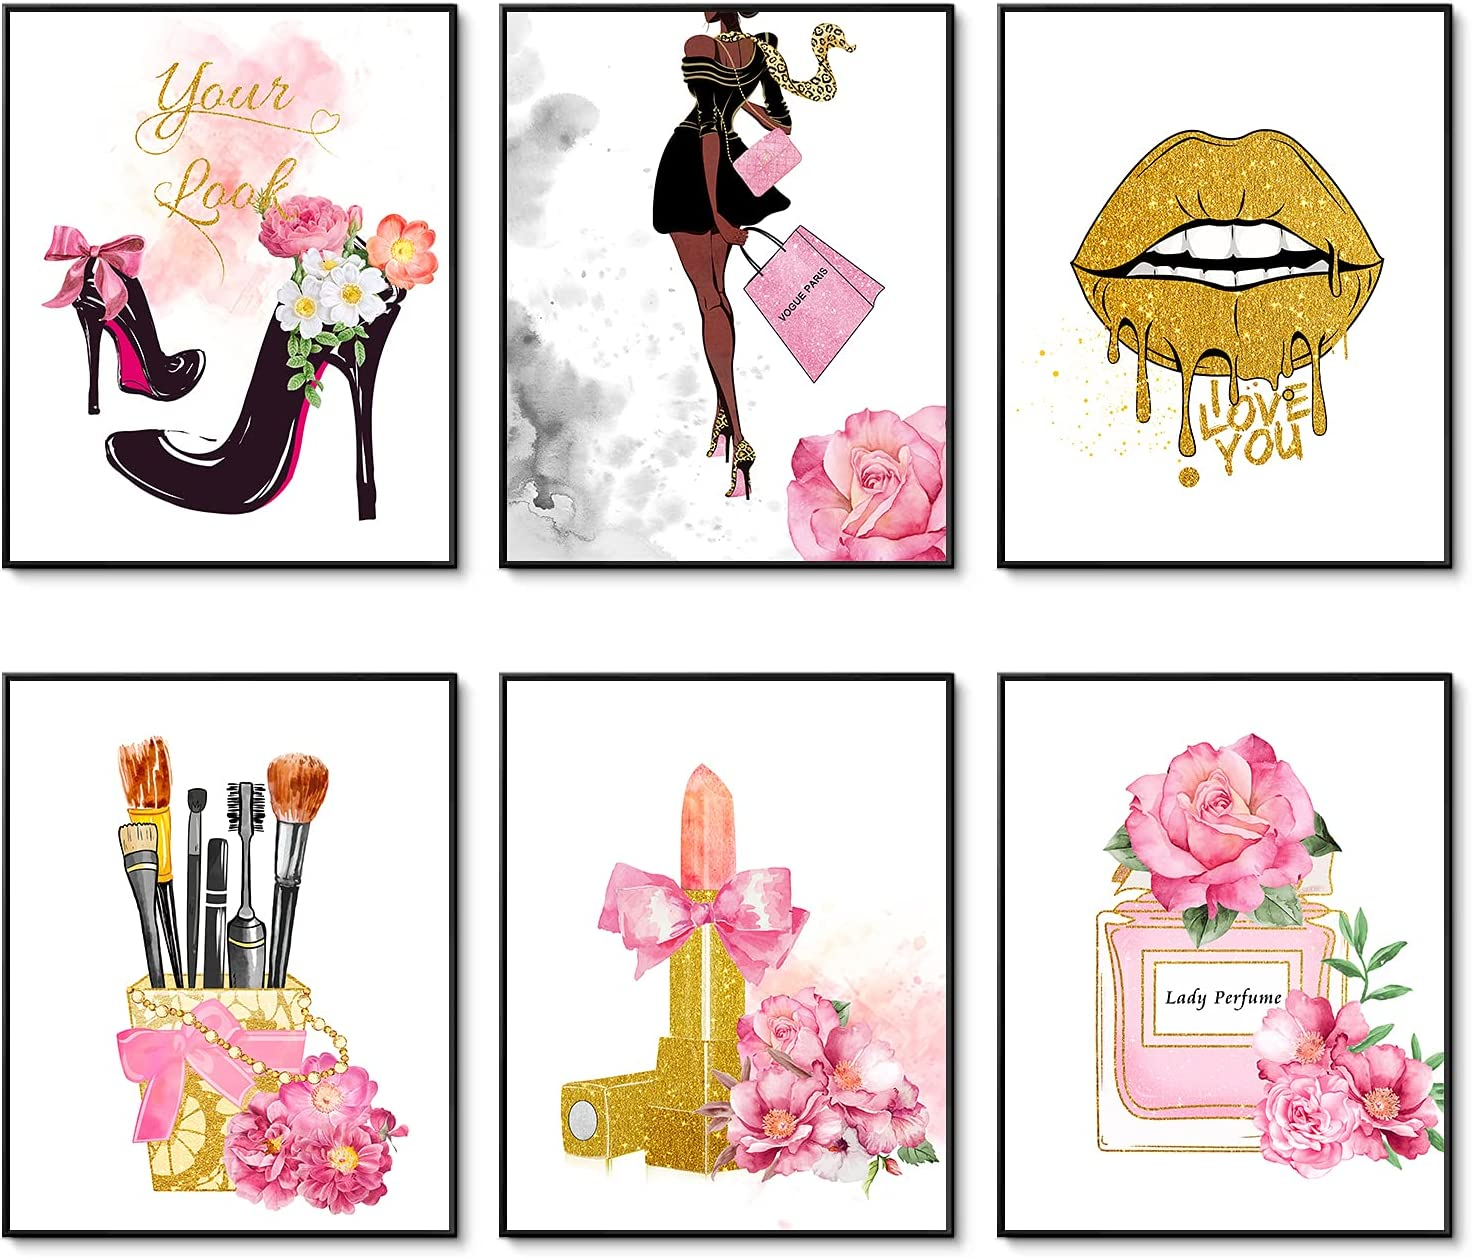 Pink Flower Perfume Golden Makeup Art Posters Set of 6 Fashion Canvas Wall Art Prints Makeup Decor Pictures for Bedroom Decor Girls Room Wall Decor (8